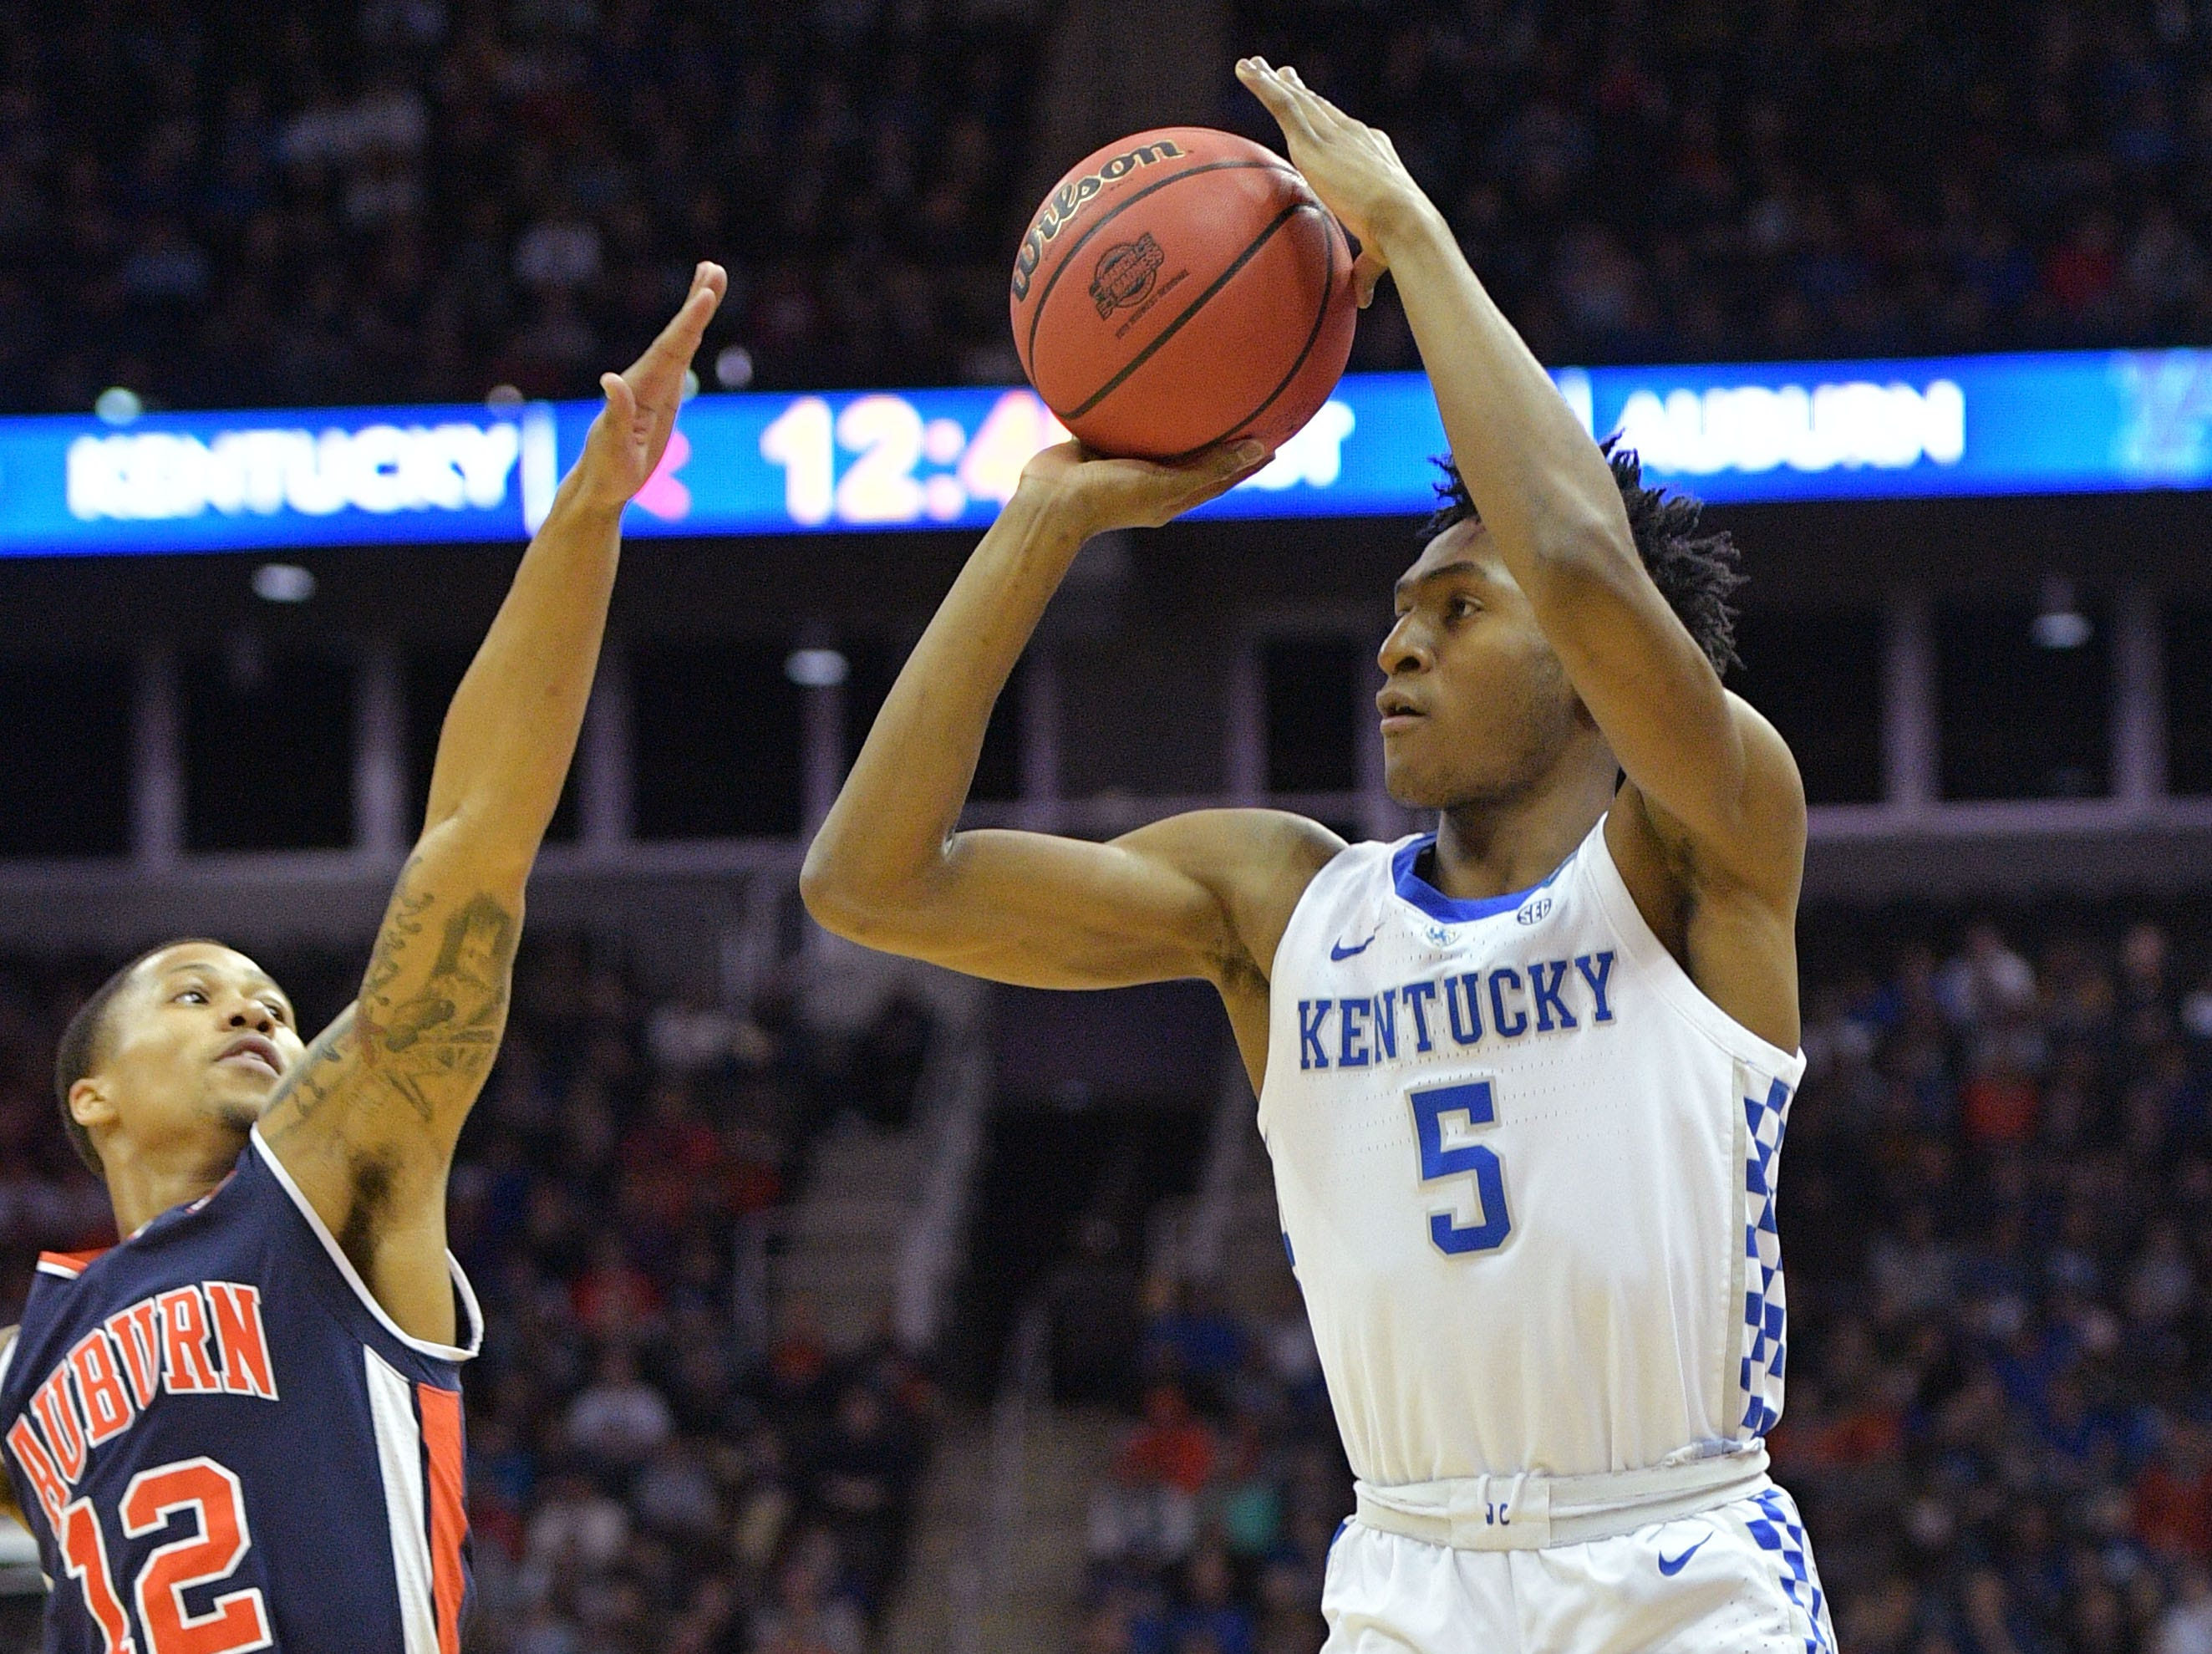 Mar 31, 2019; Kansas City, MO, United States; Kentucky Wildcats guard Immanuel Quickley (5) shoots over Auburn Tigers guard J'Von McCormick (12) during the first half in the championship game of the midwest regional of the 2019 NCAA Tournament at Sprint Center. Mandatory Credit: Denny Medley-USA TODAY Sports